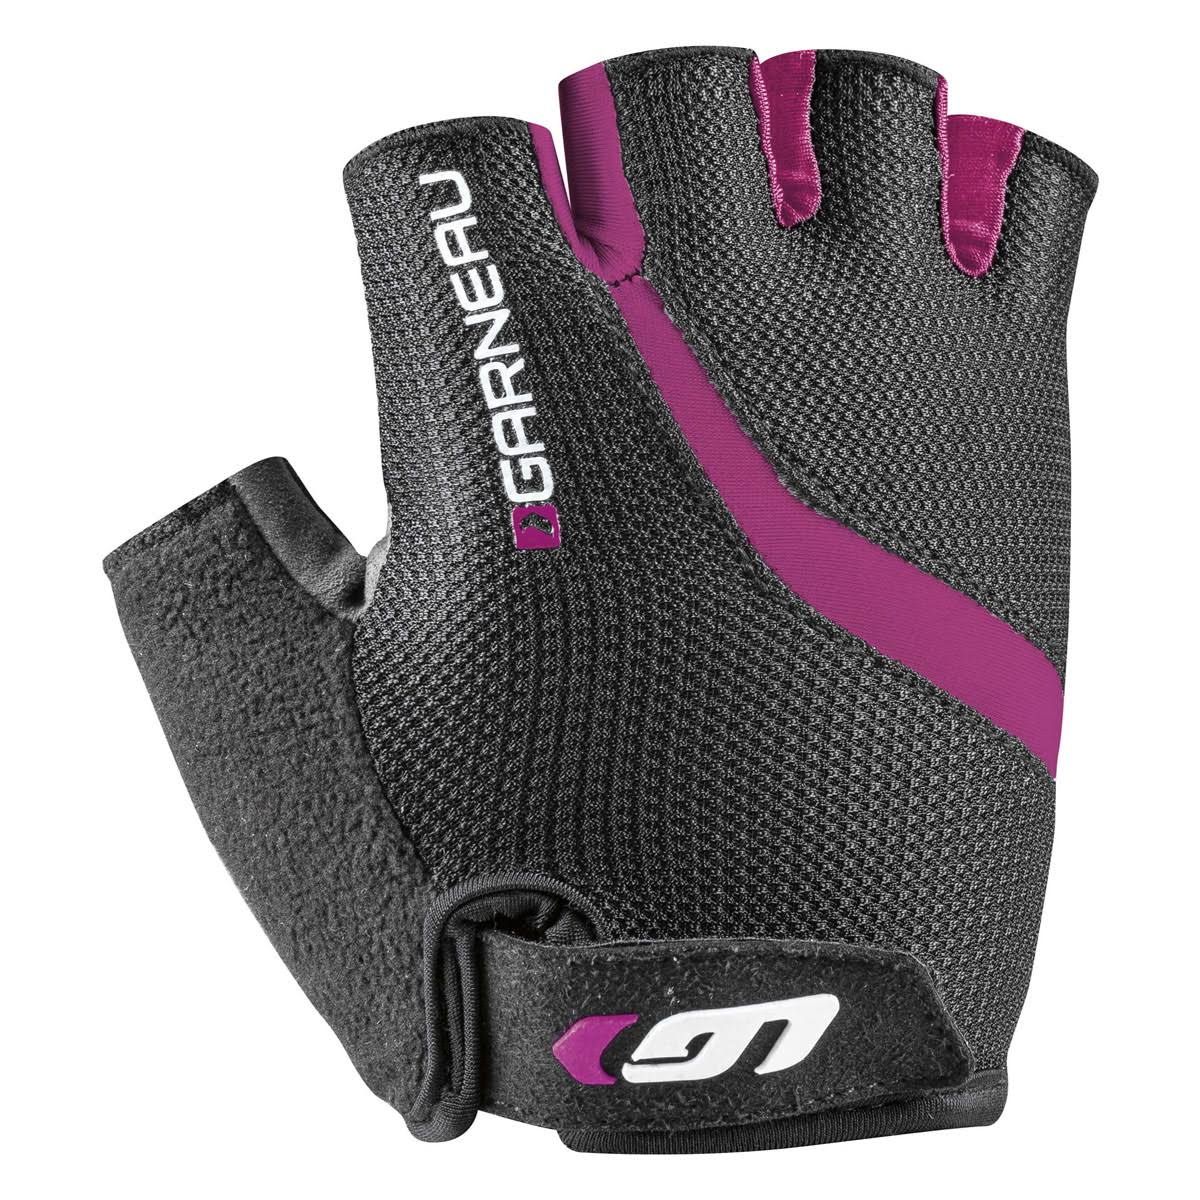 Louis Garneau Biogel Rx-v Ladies Glove - Medium, Fushia Festival